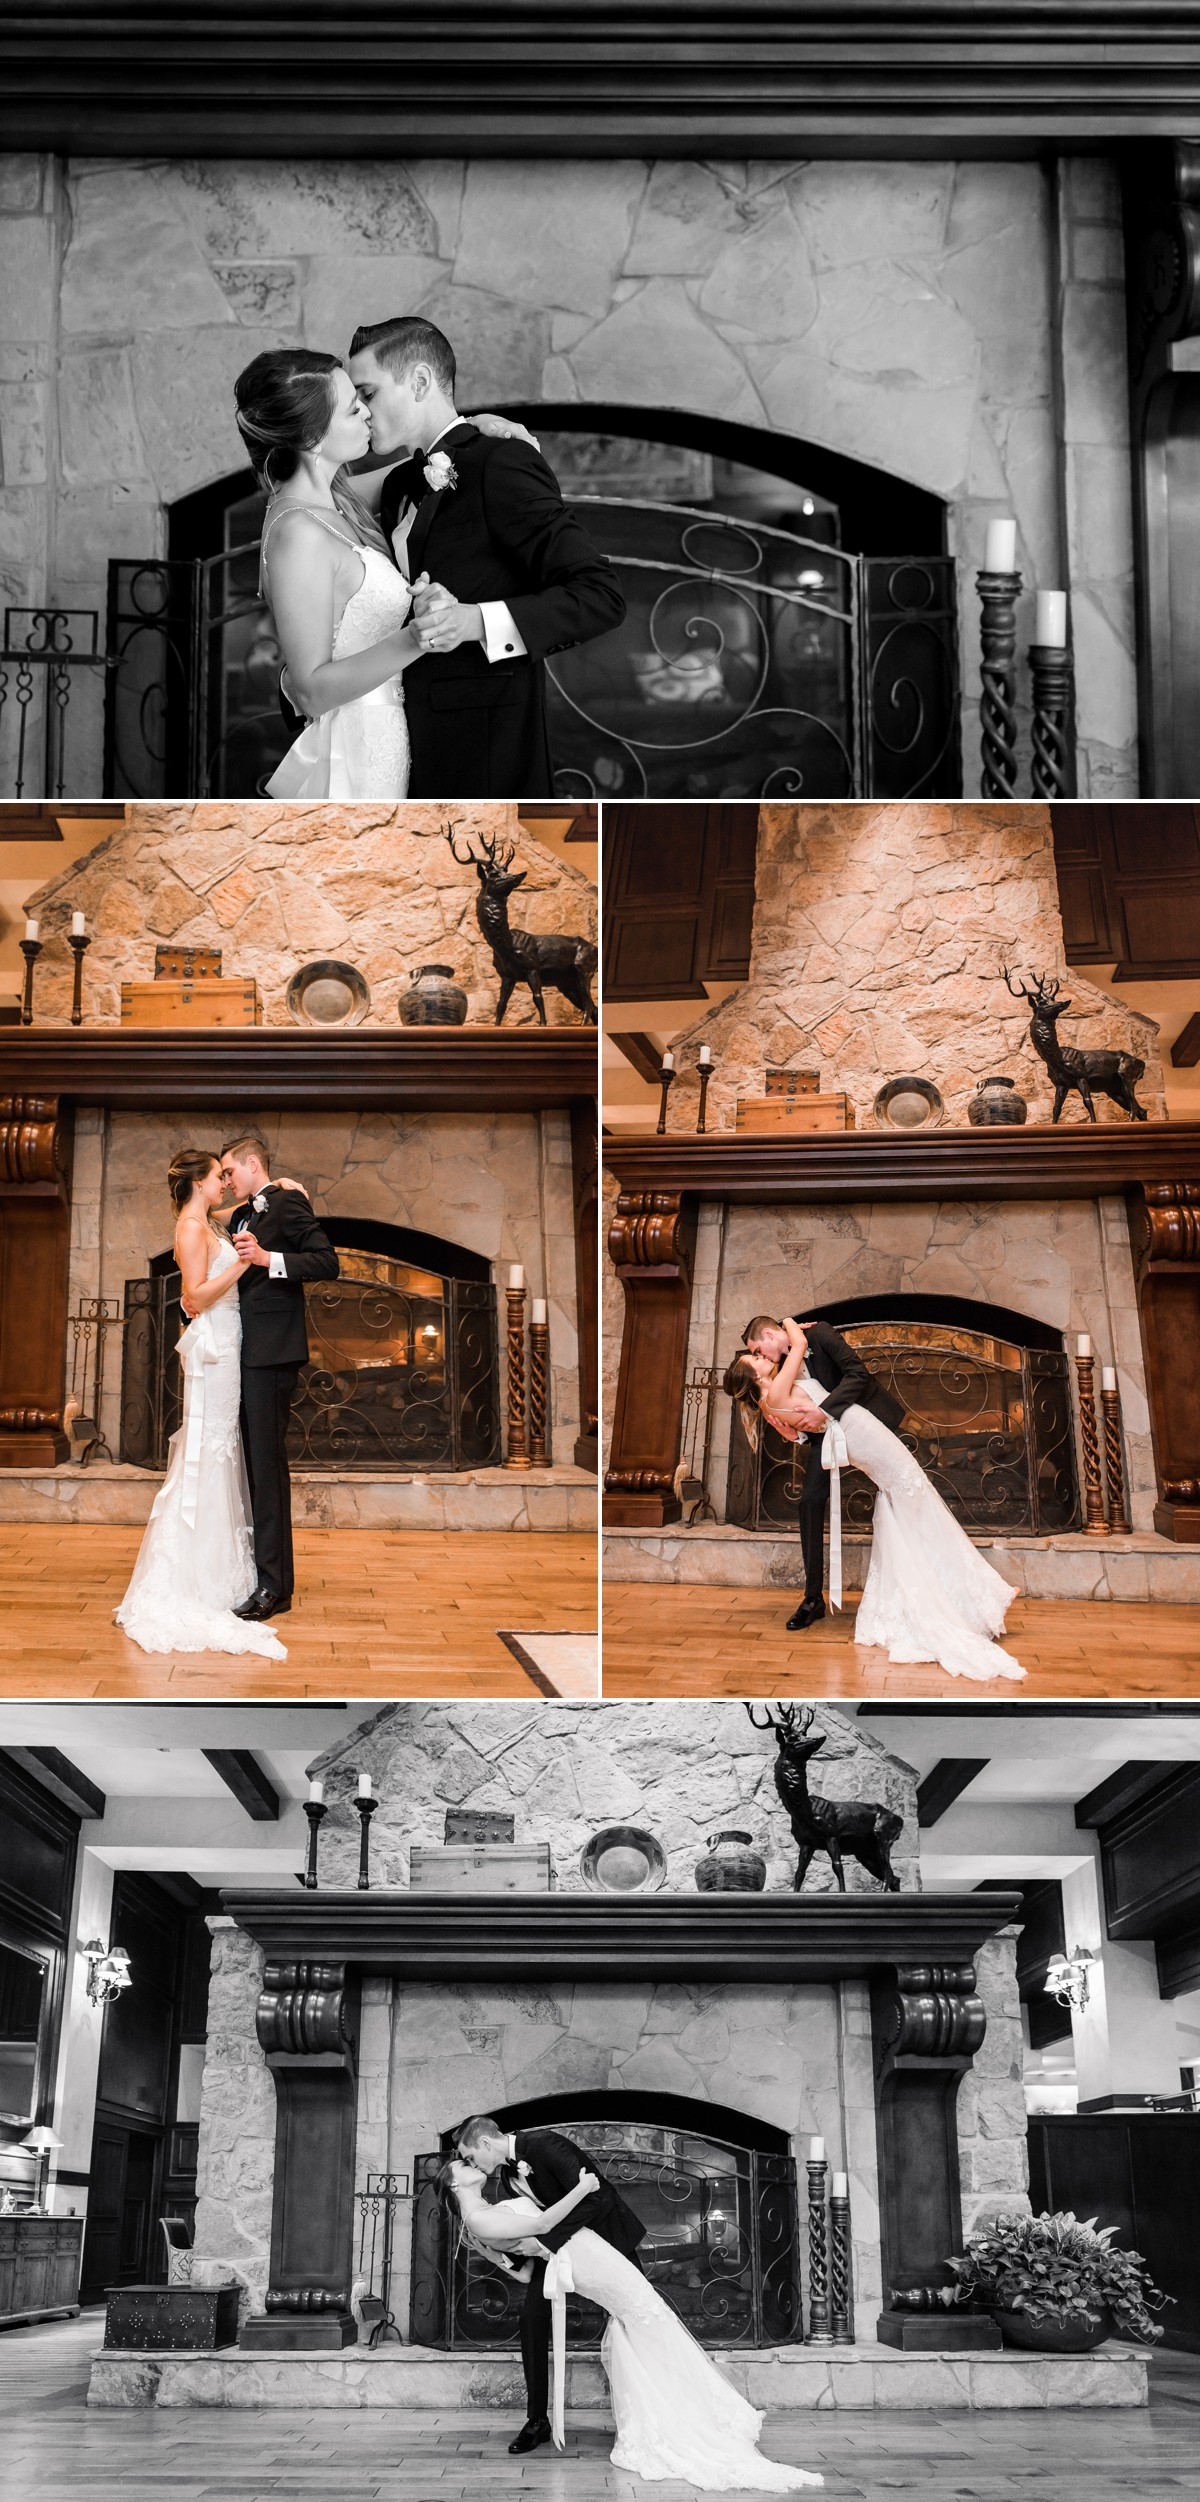 Manor House Wedding at The Houstonian Hotel Bride and Groom Fireplace Portraits